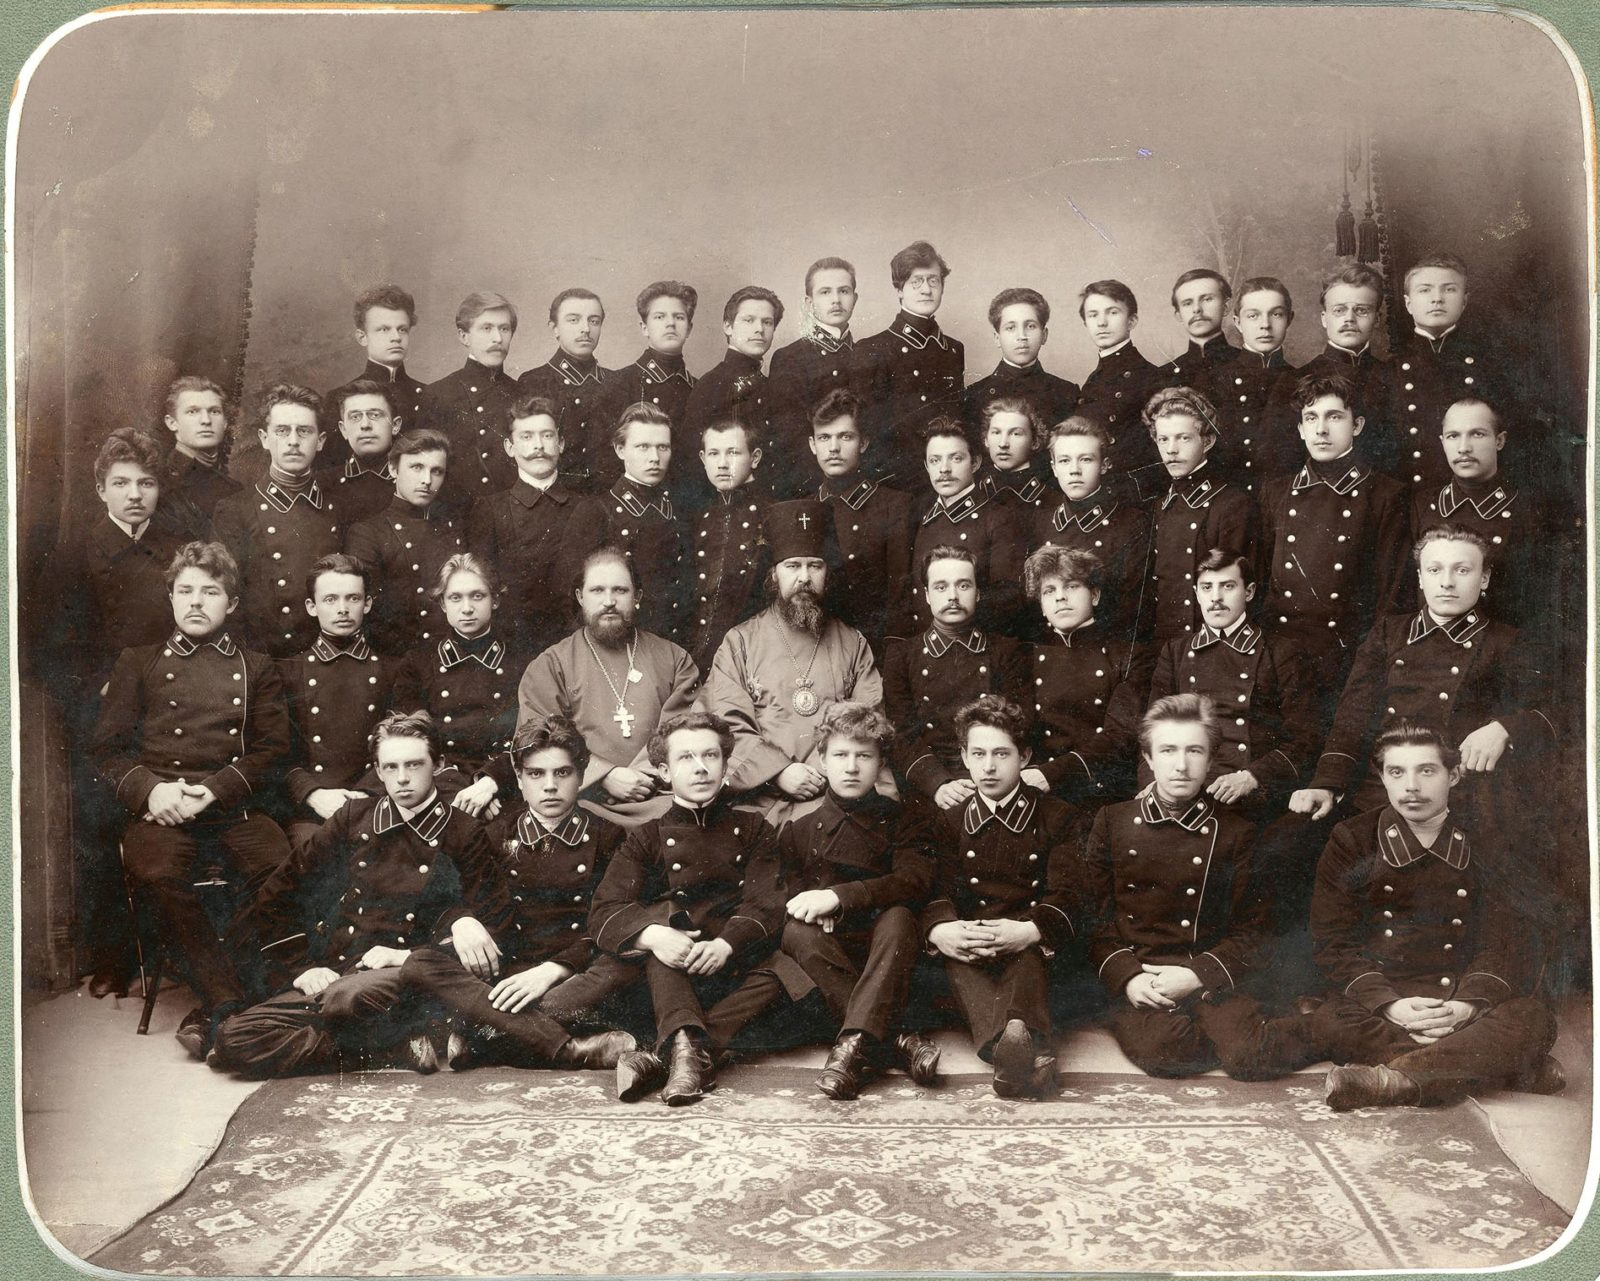 Vladimir, A group portrait of members of a circle of preachers and teachers of the Vladimir Theological Seminary.